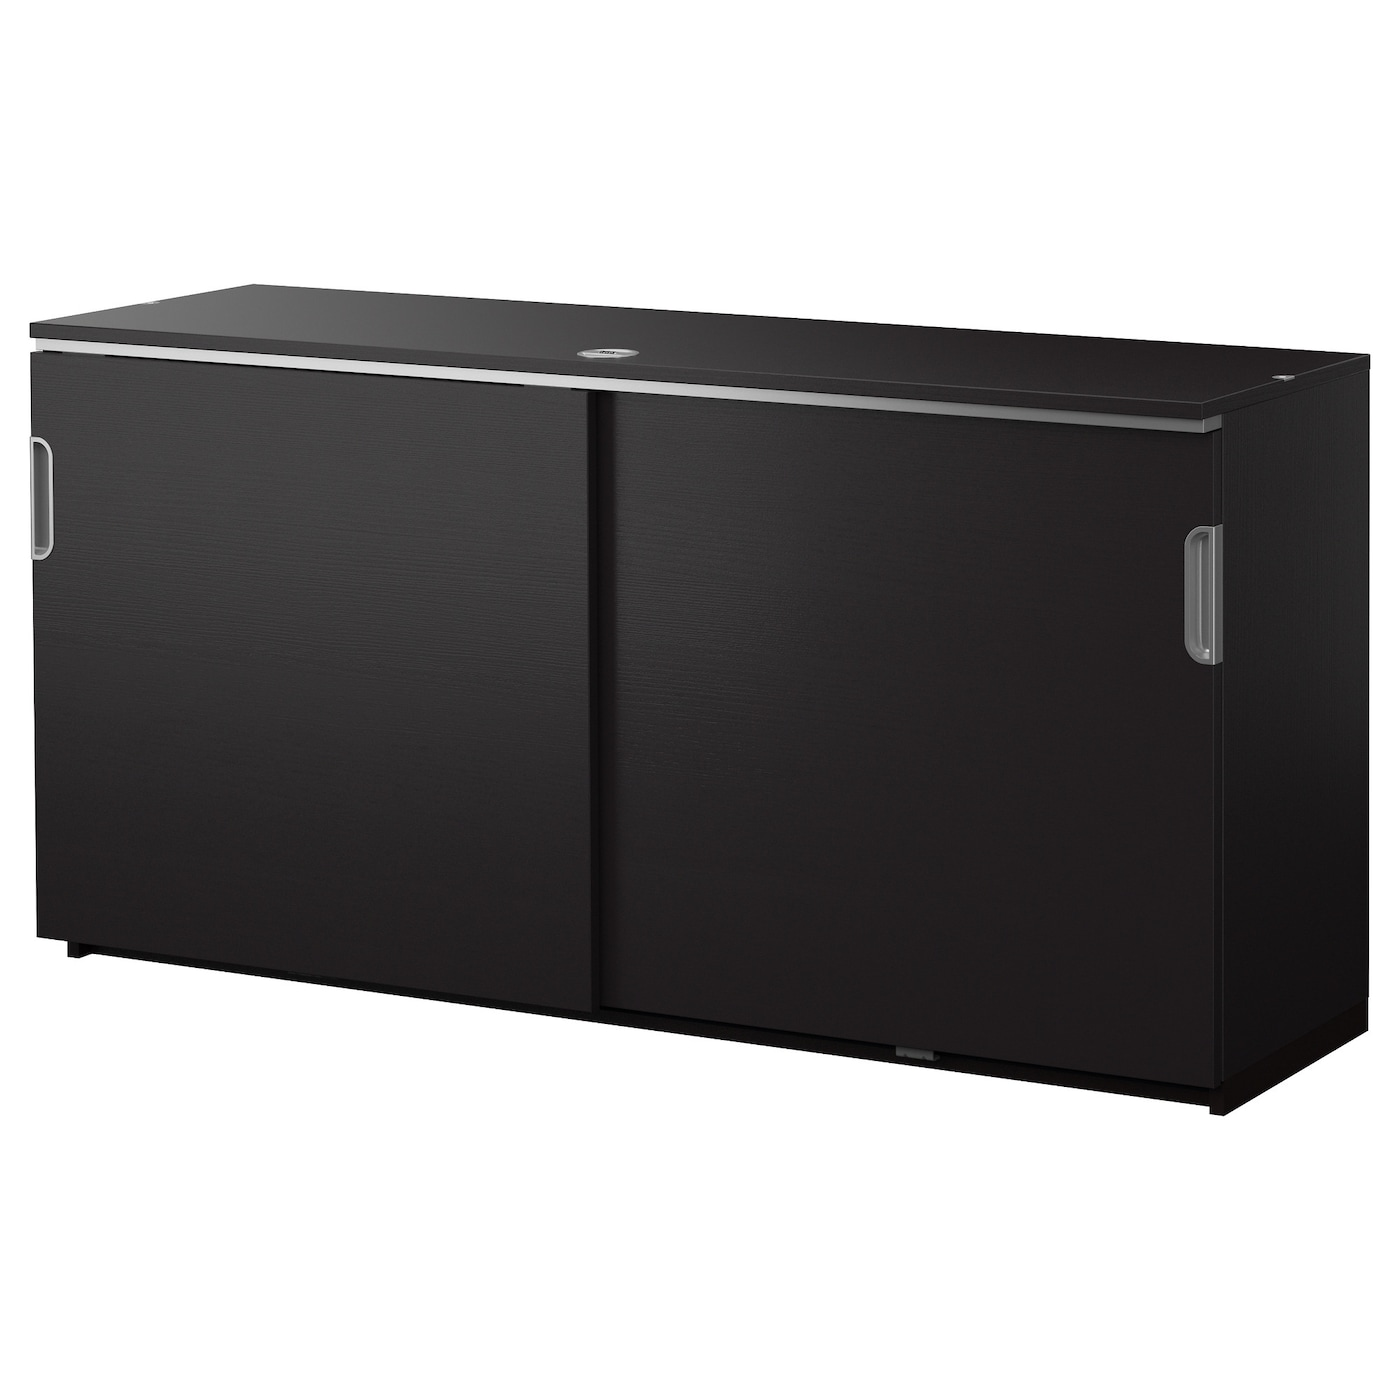 Amazing IKEA GALANT Cabinet With Sliding Doors Integrated Damper Makes Doors Close  Silently And Gently.